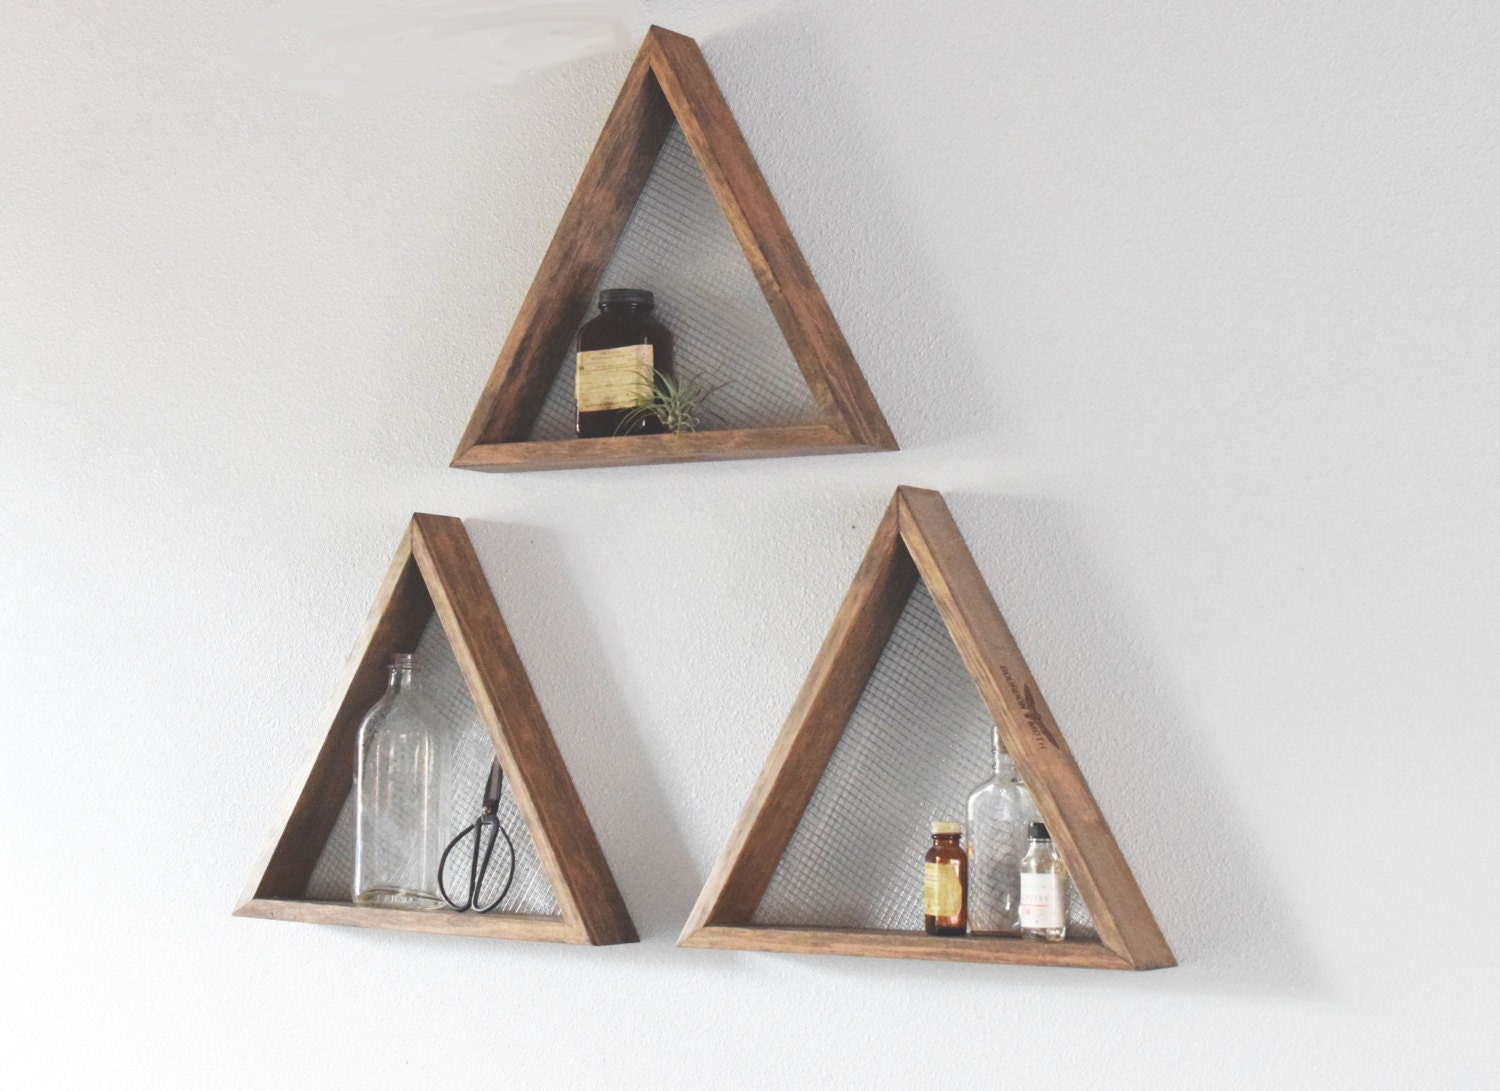 Set of three geometric wall art shelf geometric home decor wall set of three geometric wall art shelf geometric home decor wall hanging amipublicfo Gallery